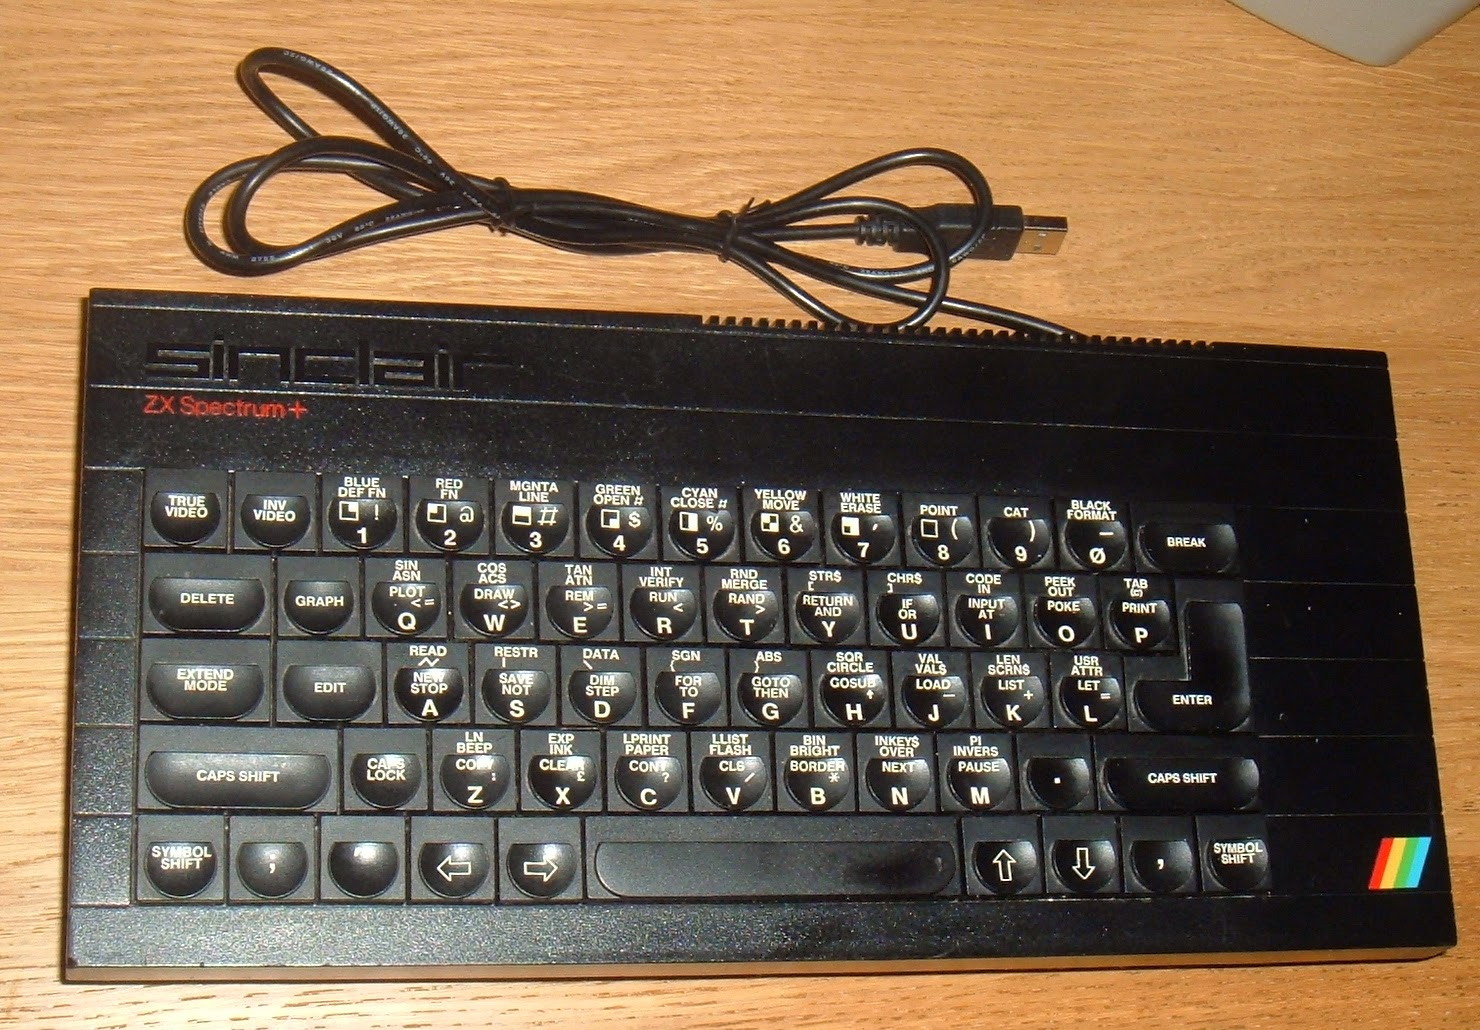 Tynemouth Software August 2014 Keyscan Wiring Diagram Using The Spectrum For Usb Keyboards Is A Bit Annoying As Extra Keys Cant Really Be Used To Full Advantage Being Wired Multiple Keypresses On